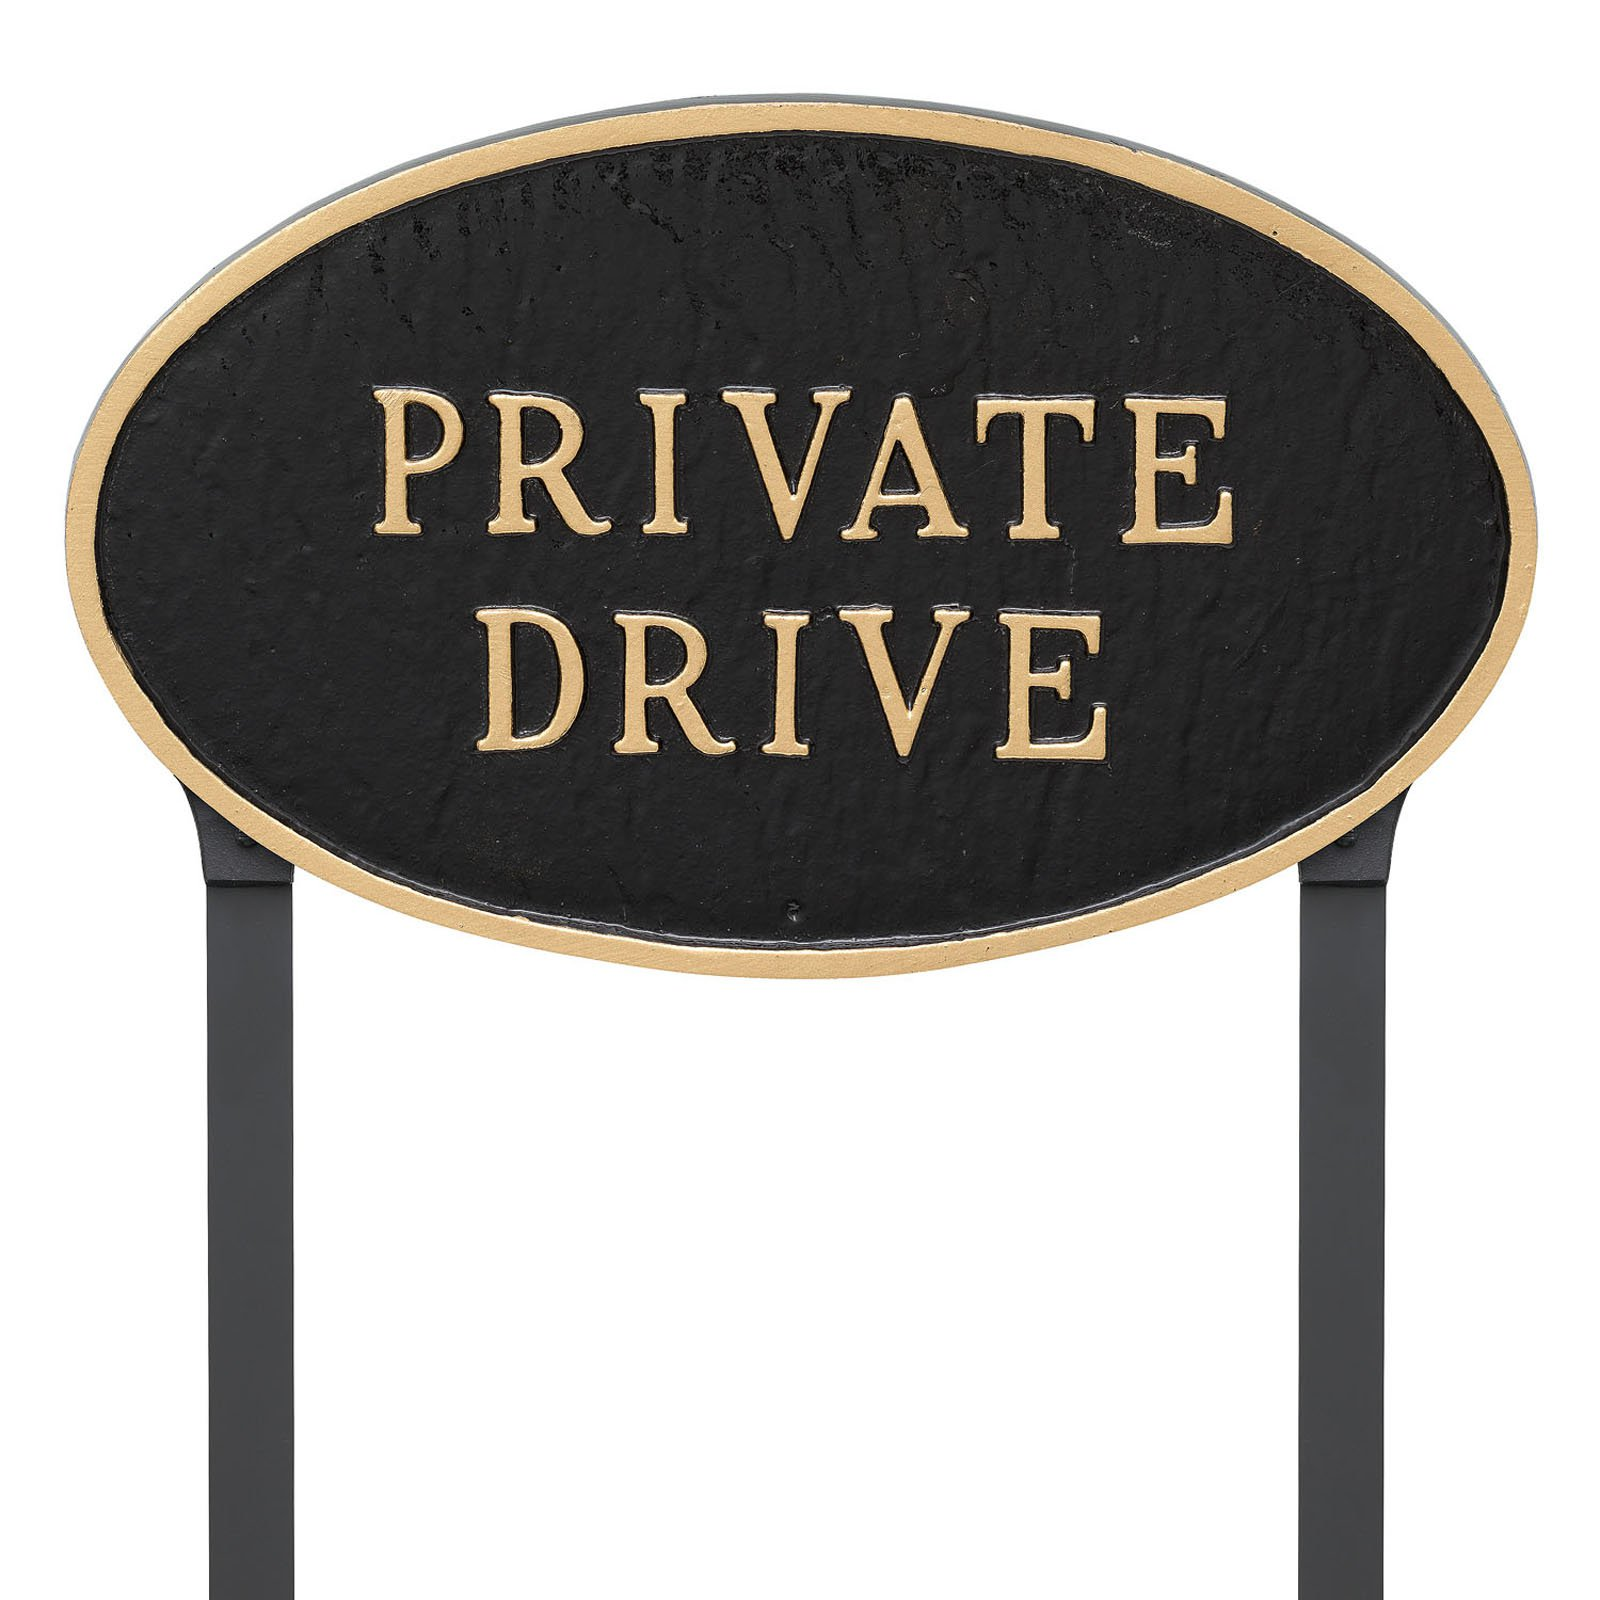 Montague Metal Products Private Drive Oval Lawn Plaque